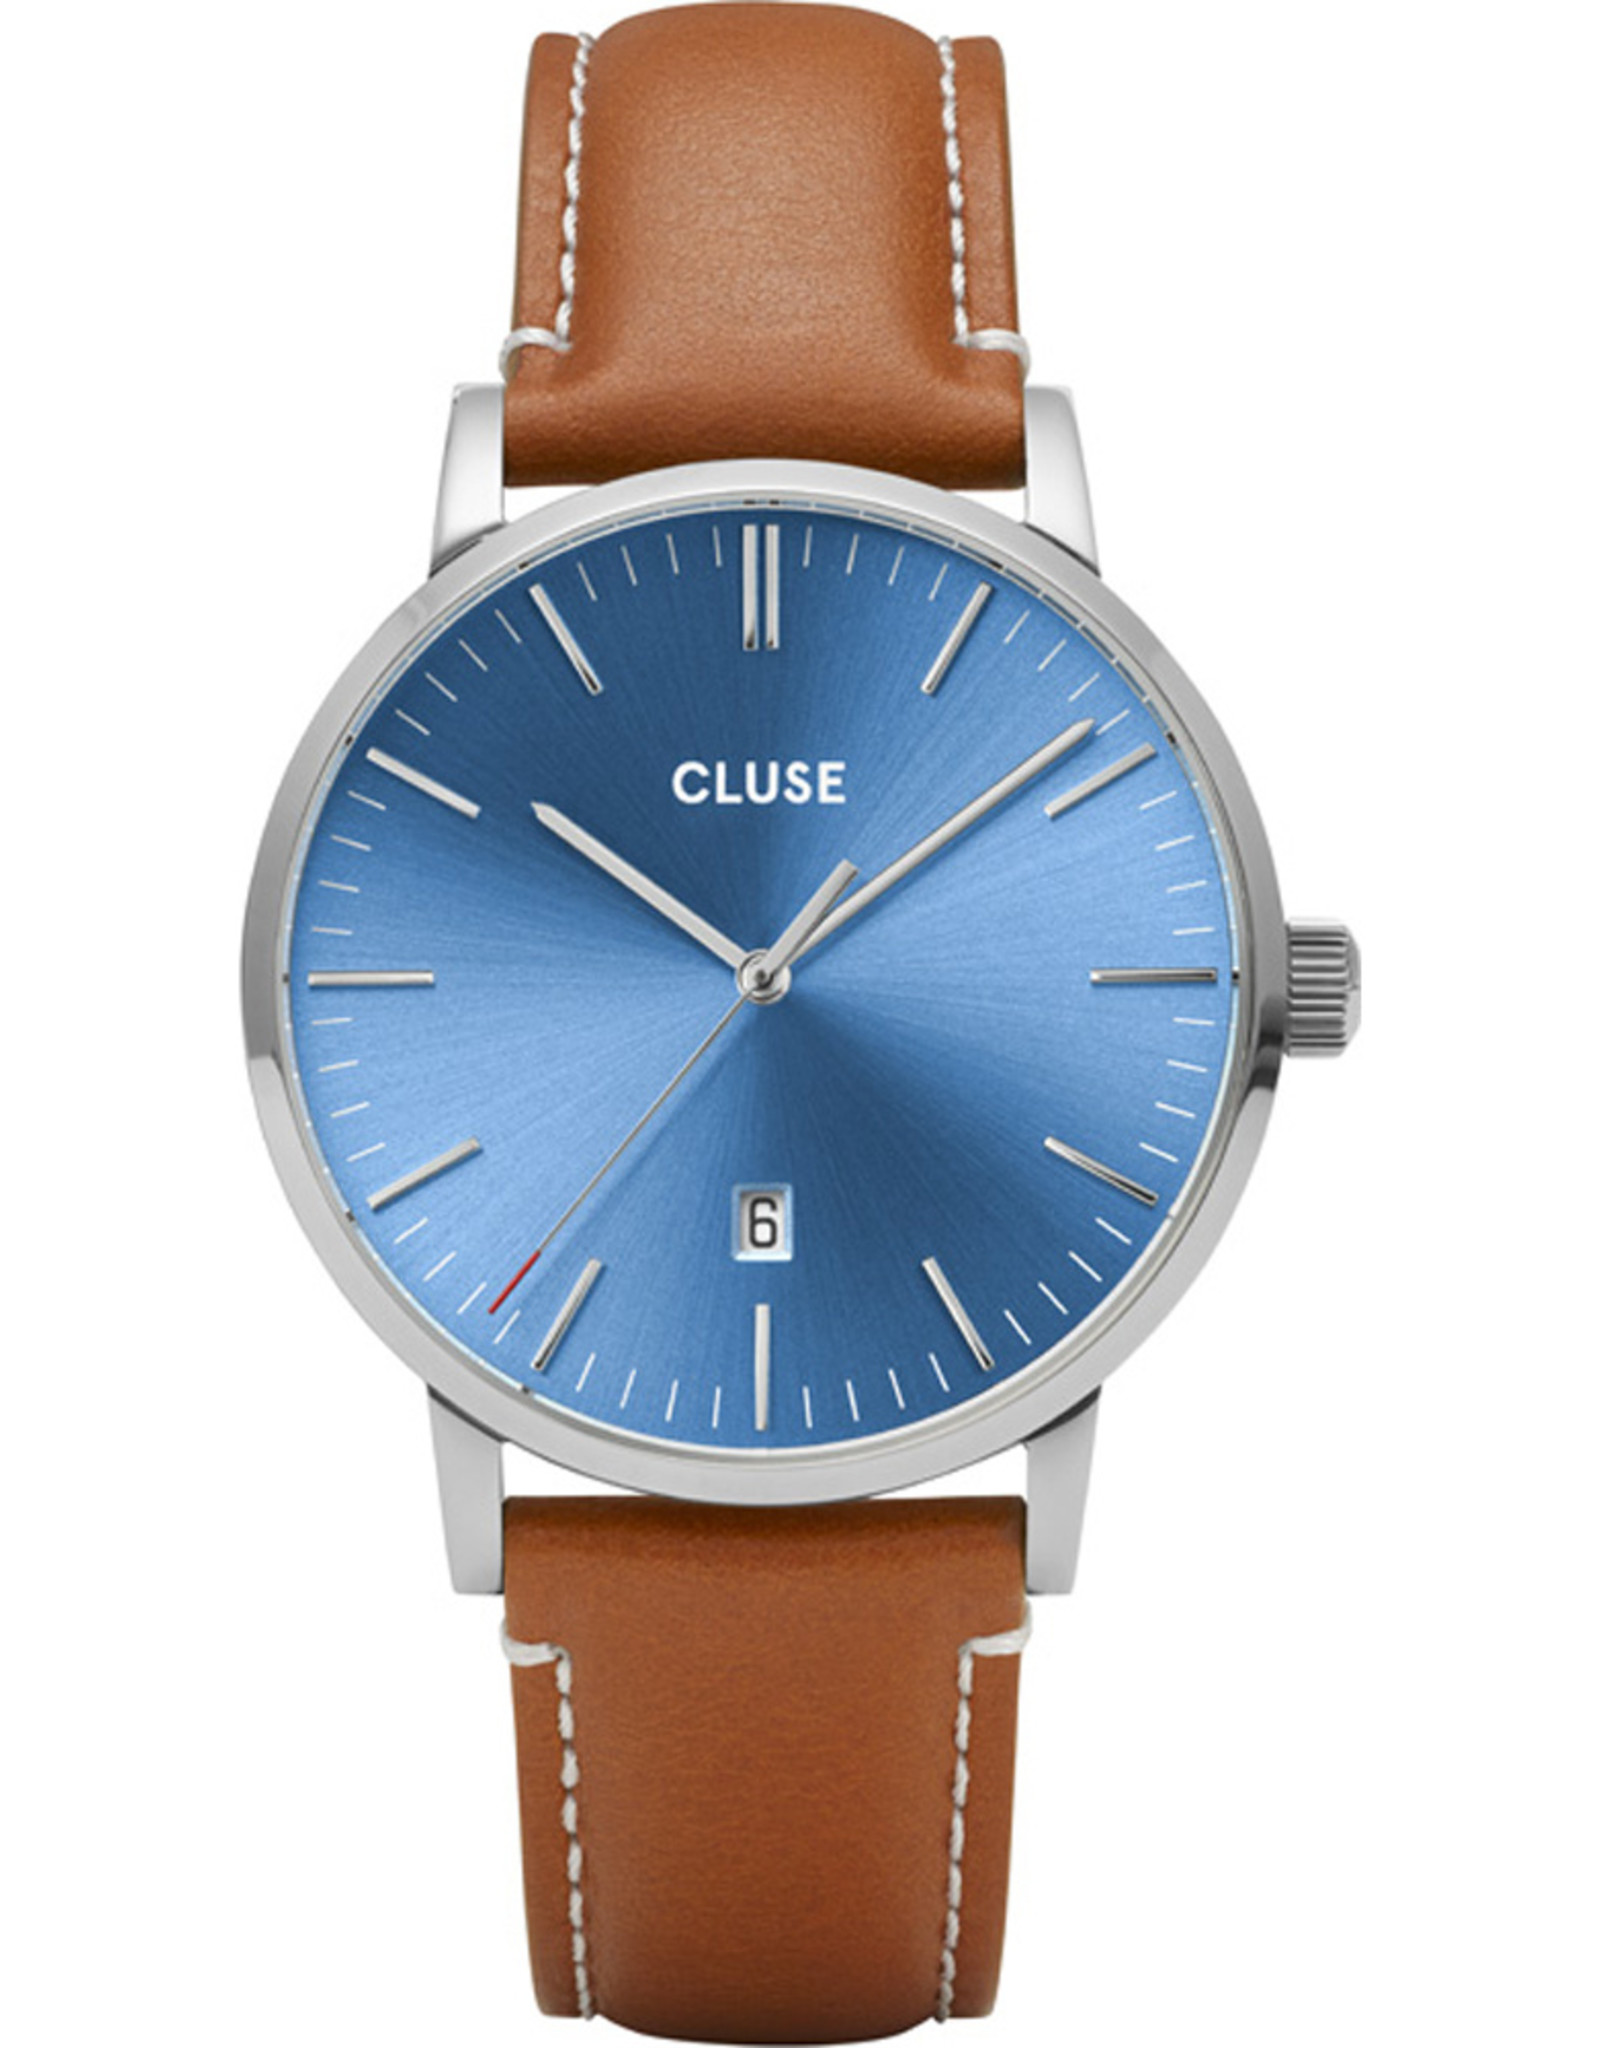 Cluse Aravis Silver Blue/Light Brown Leather